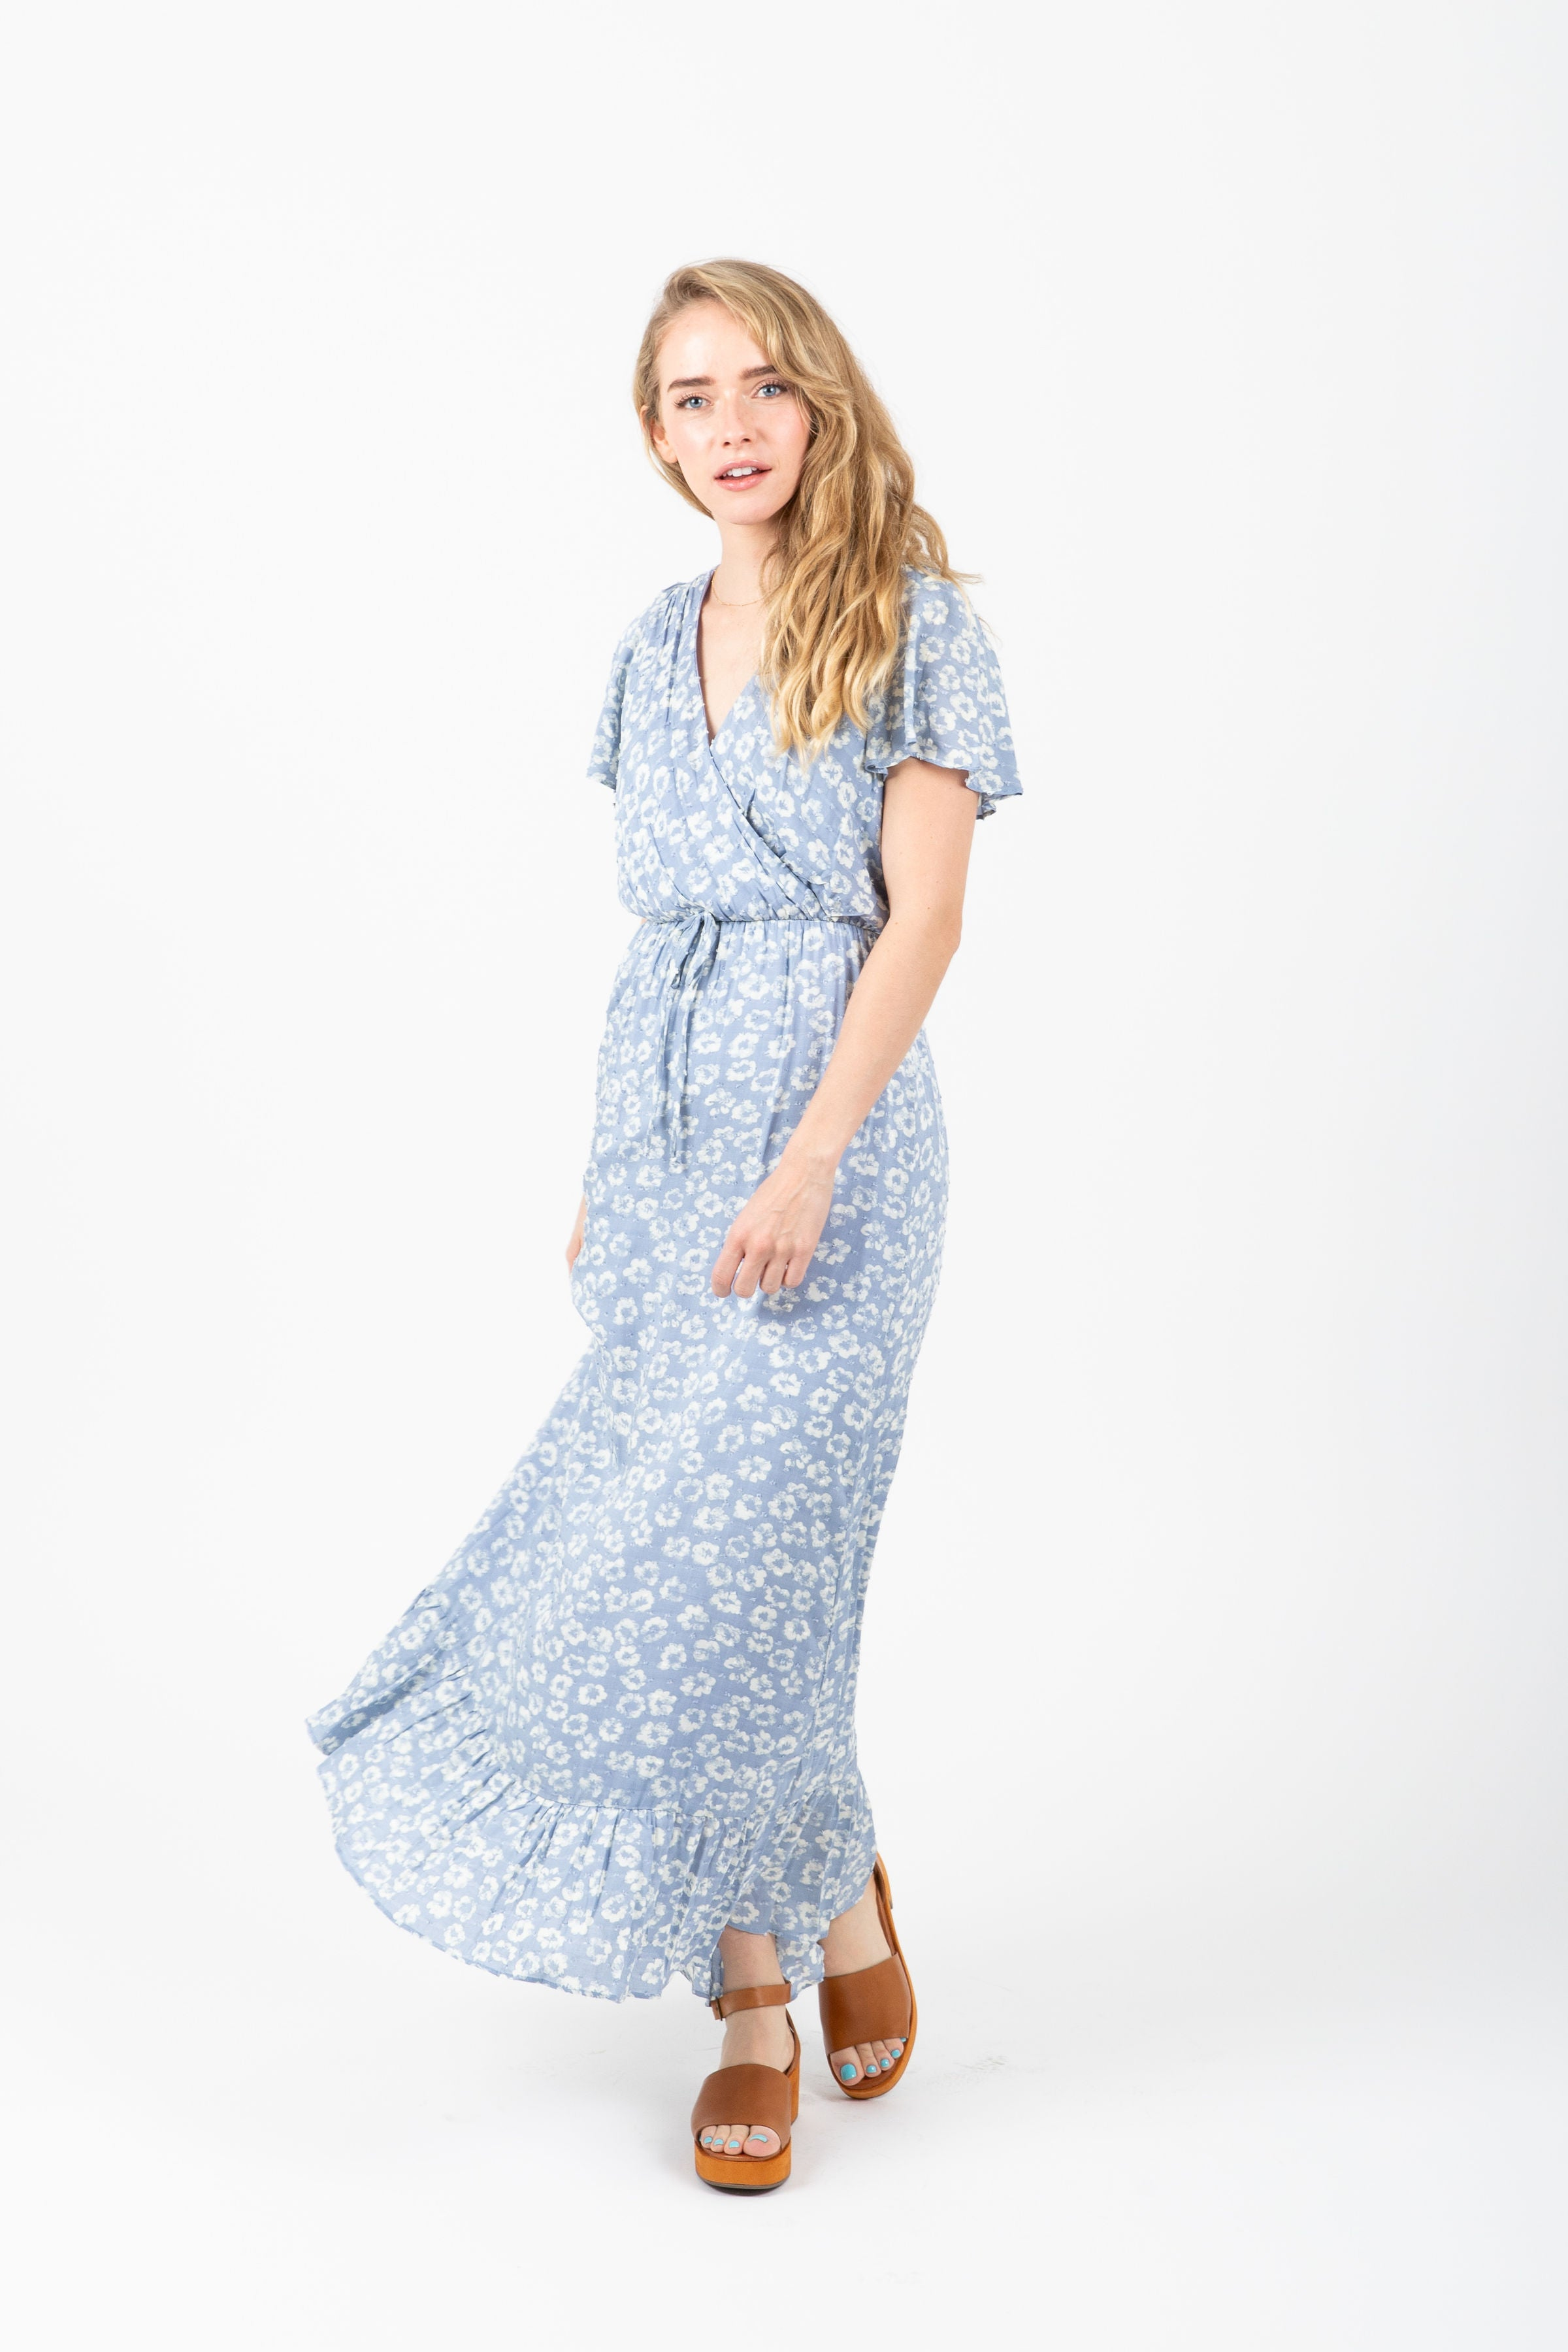 The Soar Floral Ruffle Maxi Dress in Blue